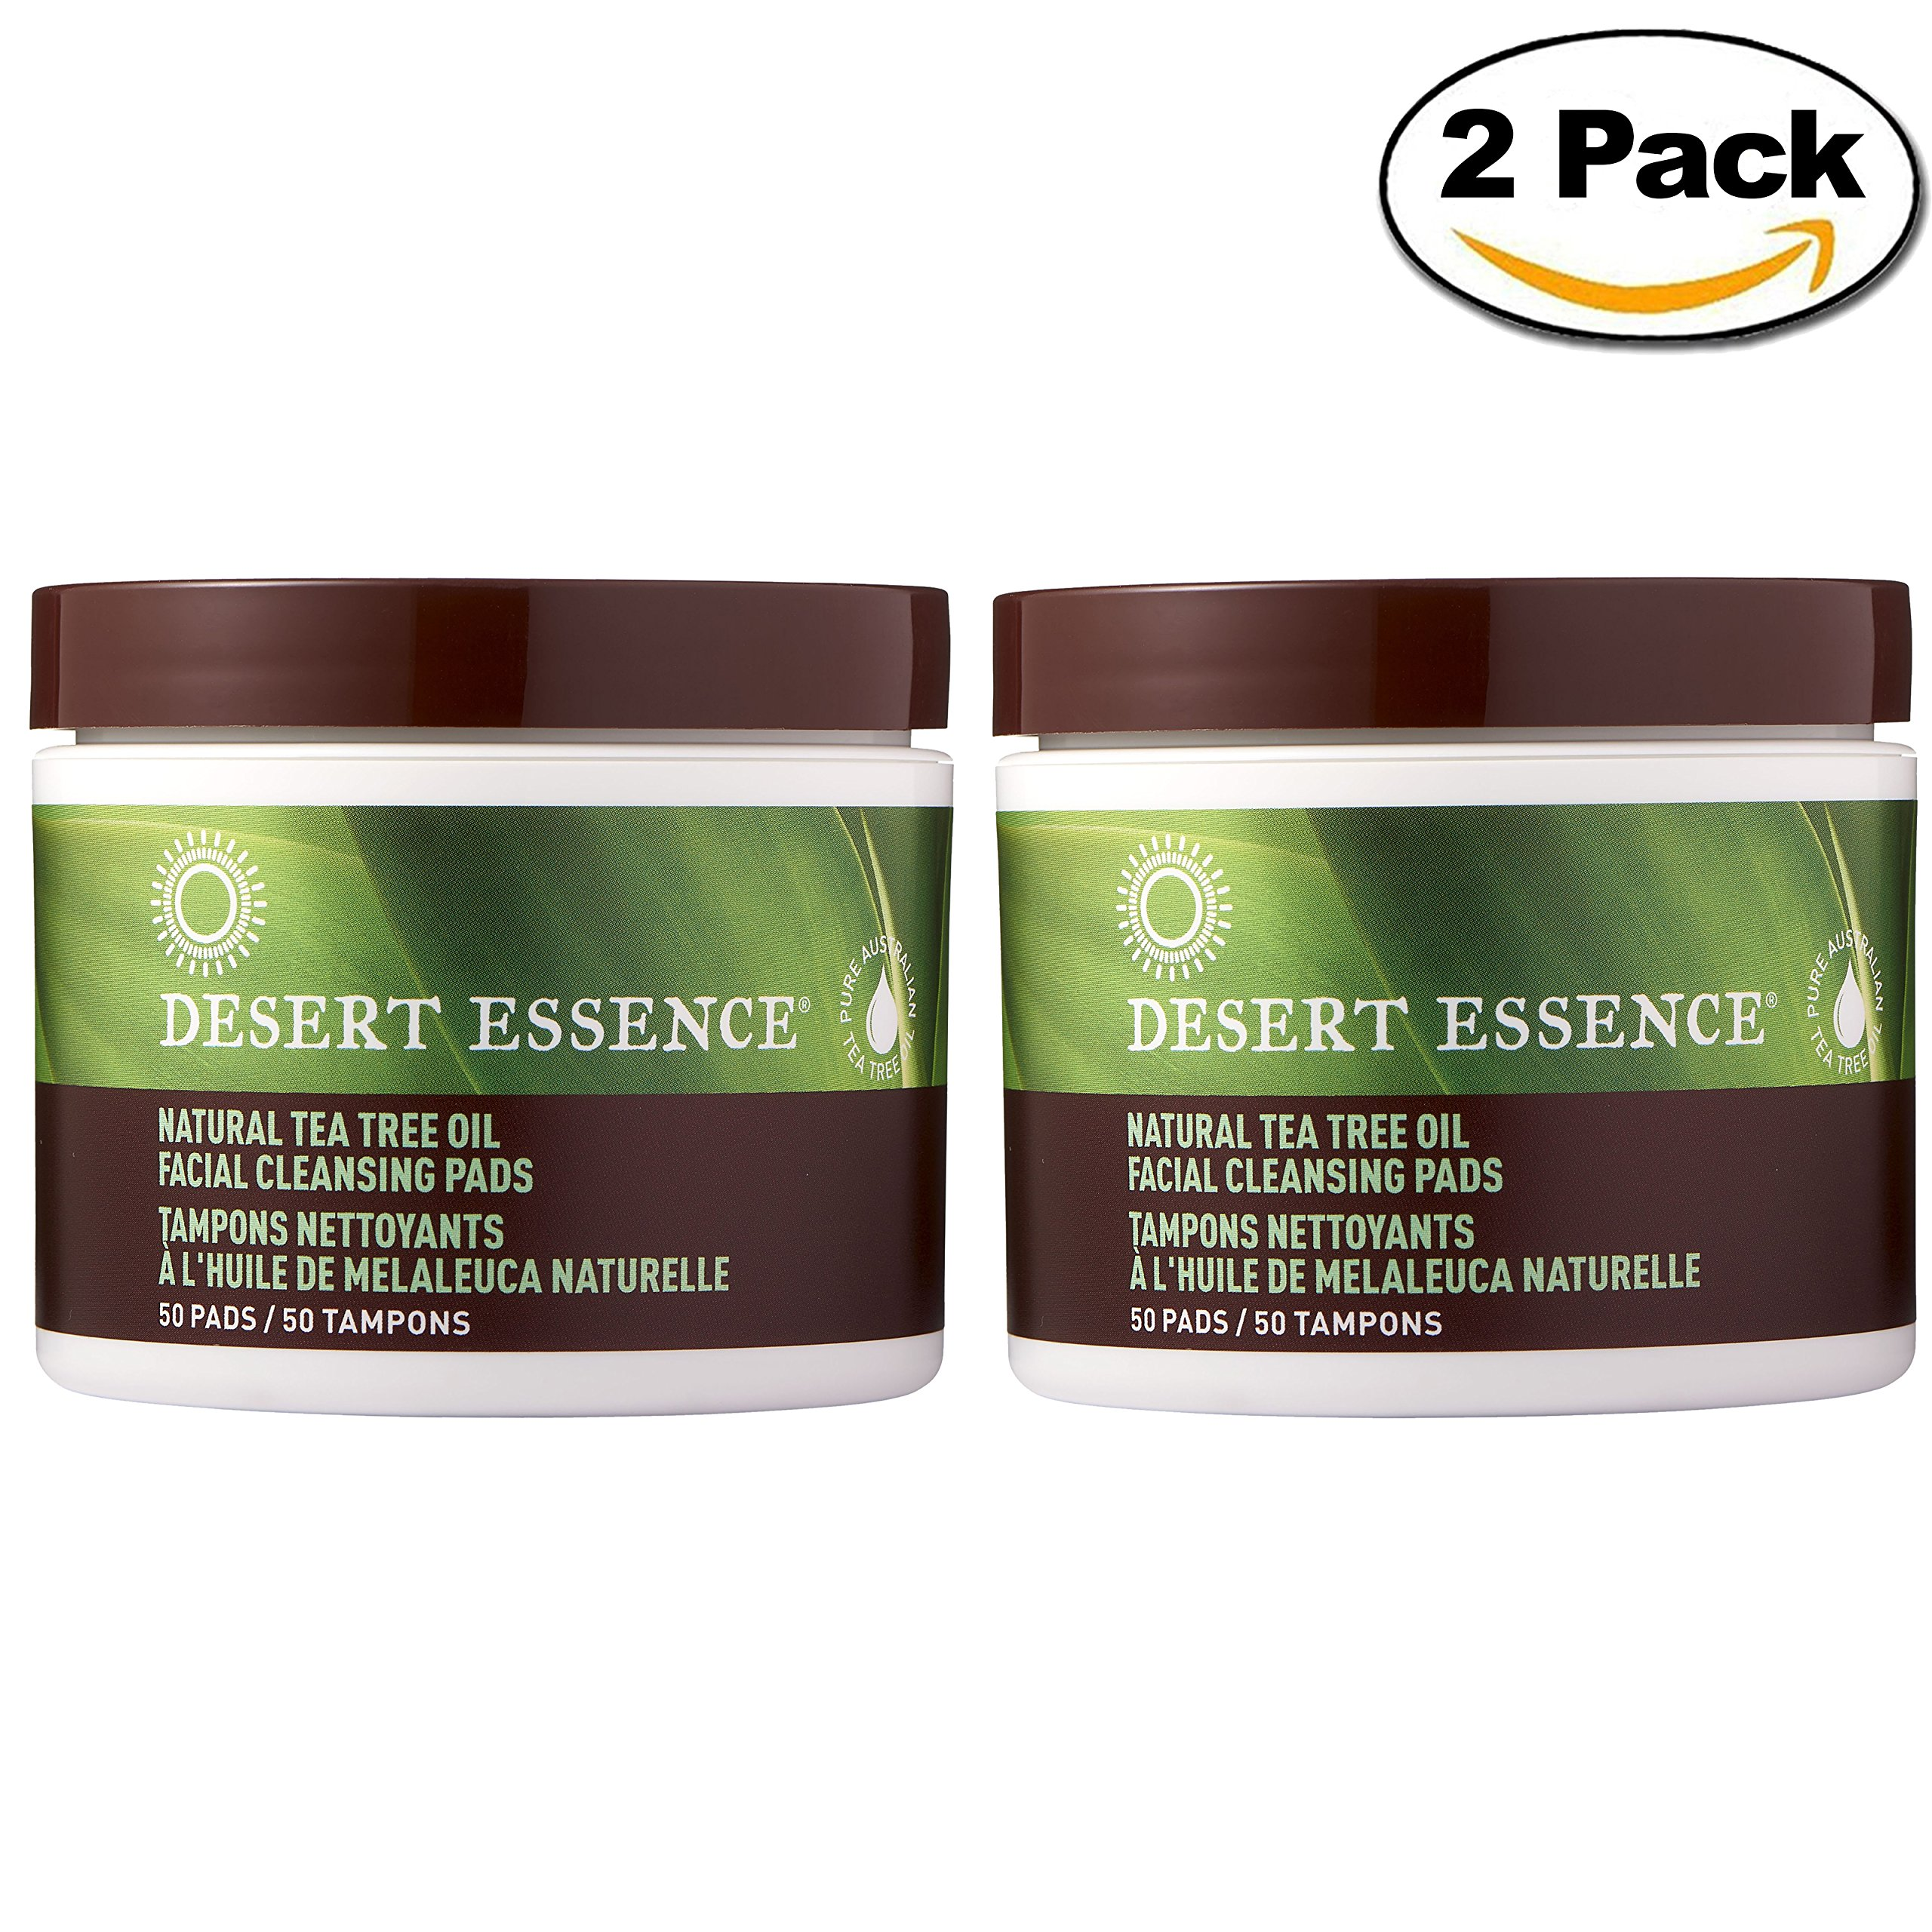 Desert essence facial moisturizer useful message